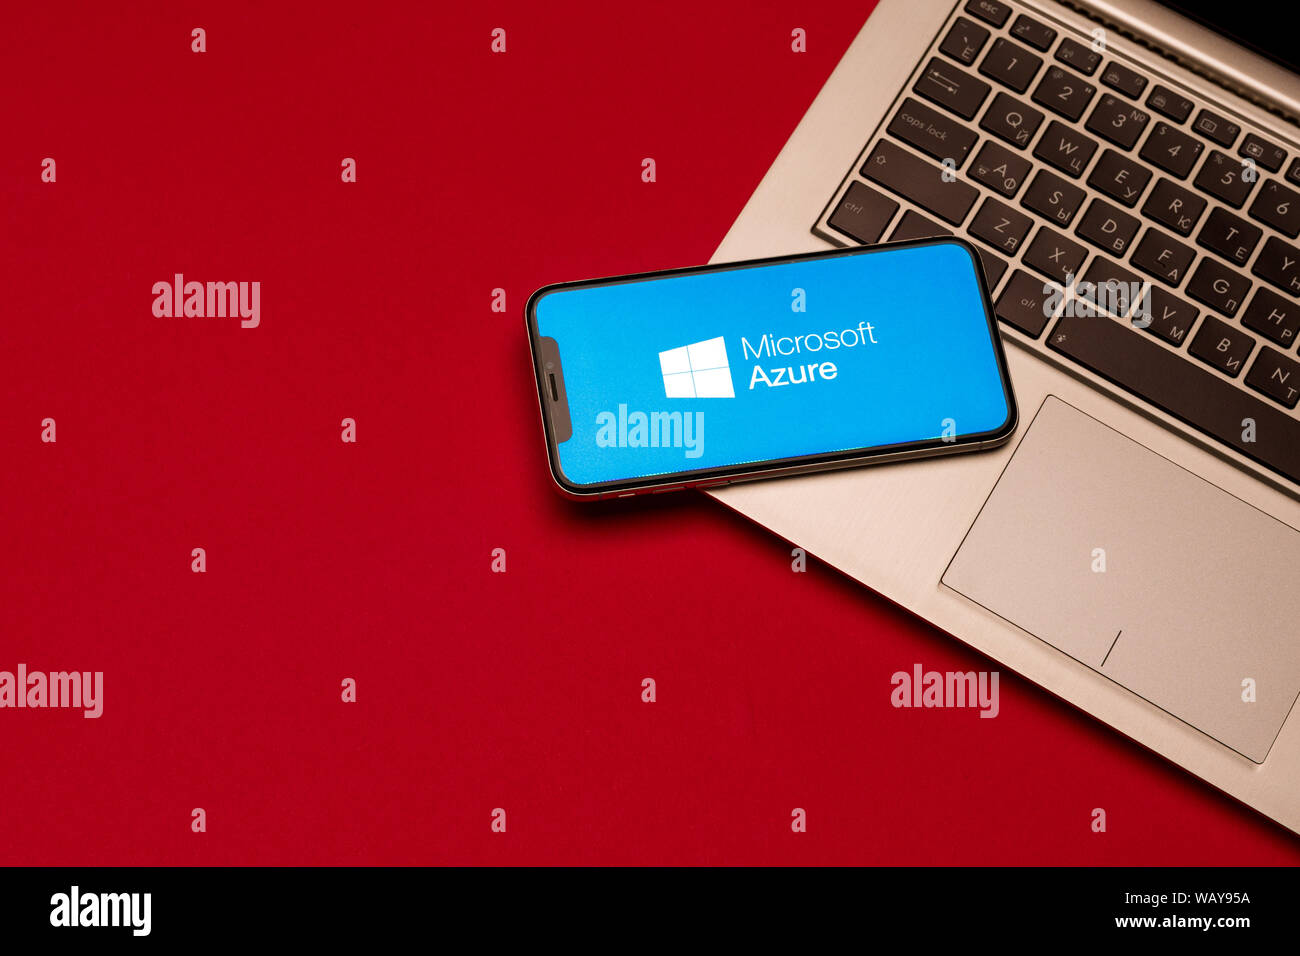 Tula Russia August 19 2019 Microsoft Azure Displayed On A Iphone X Near Modern Laptop On Red Background Stock Photo Alamy